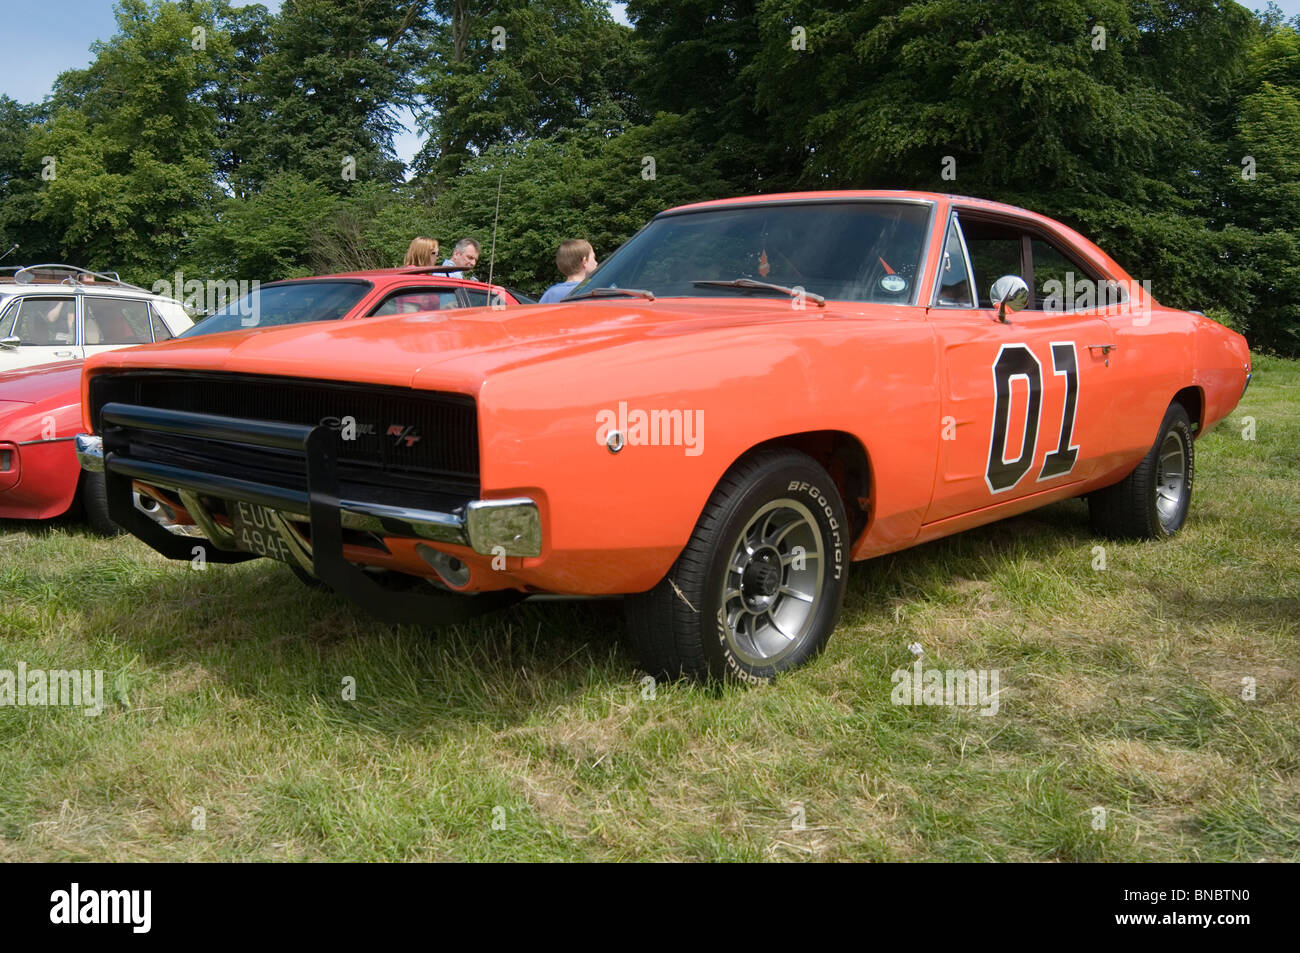 1969 Dodge Charger General Lee Classic Muscle Car For Sale: 1969 Dodge Charger Mopar General Lee Replica Muscle Car TV